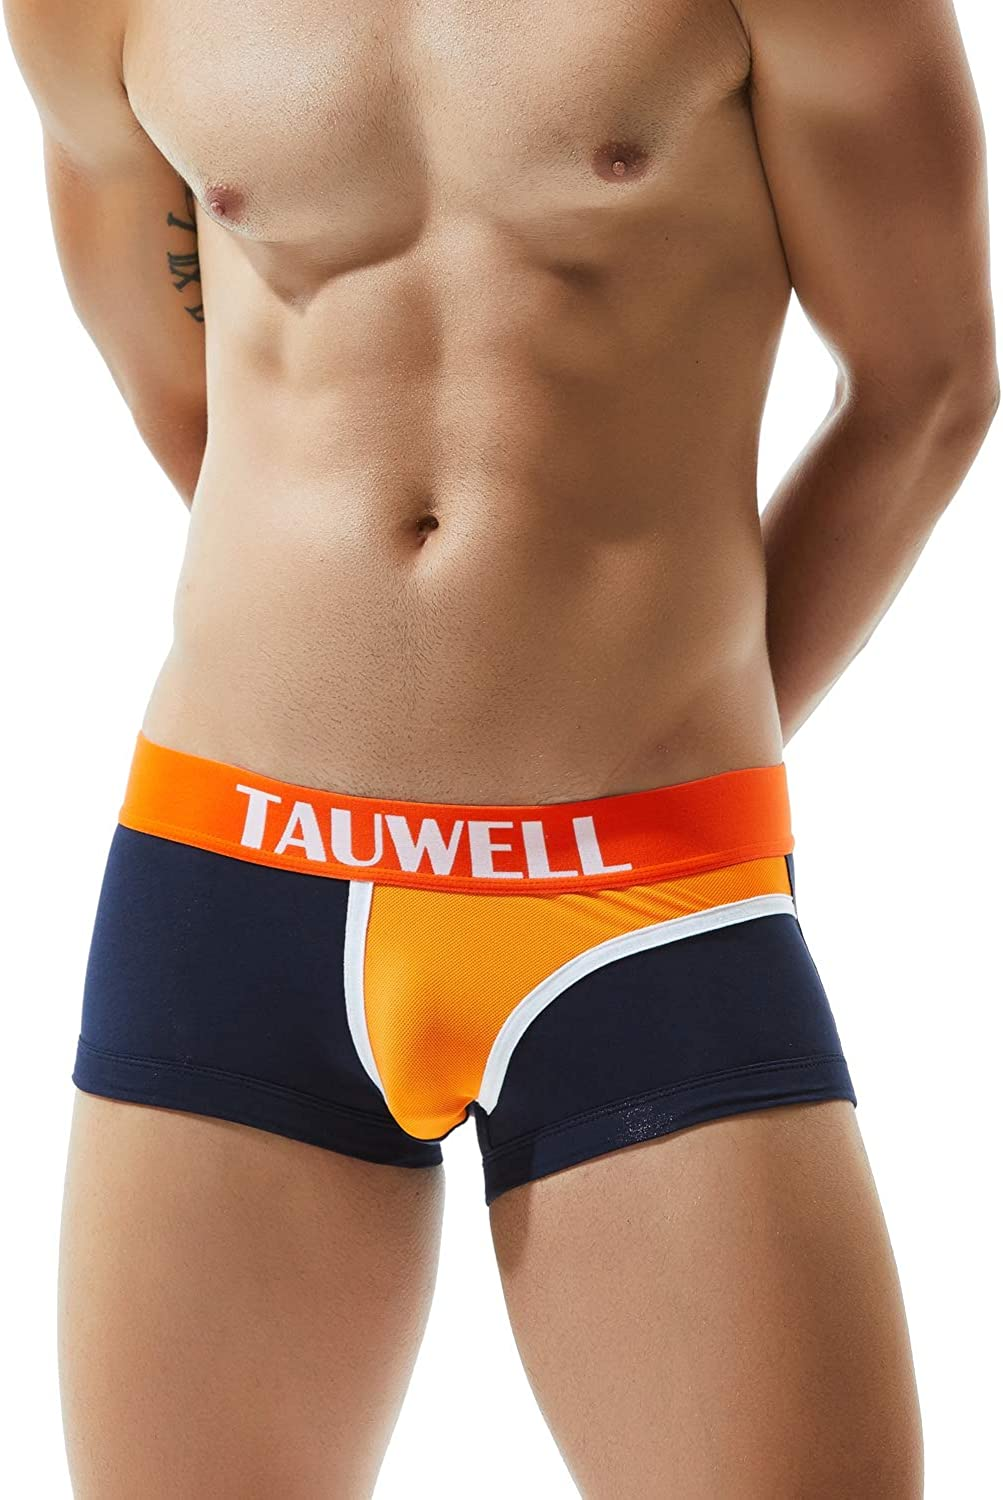 SEOBEAN Large discharge sale TAUWELL Mens Low Rise Sexy Brief Pants low-pricing Short Trunk Boxer